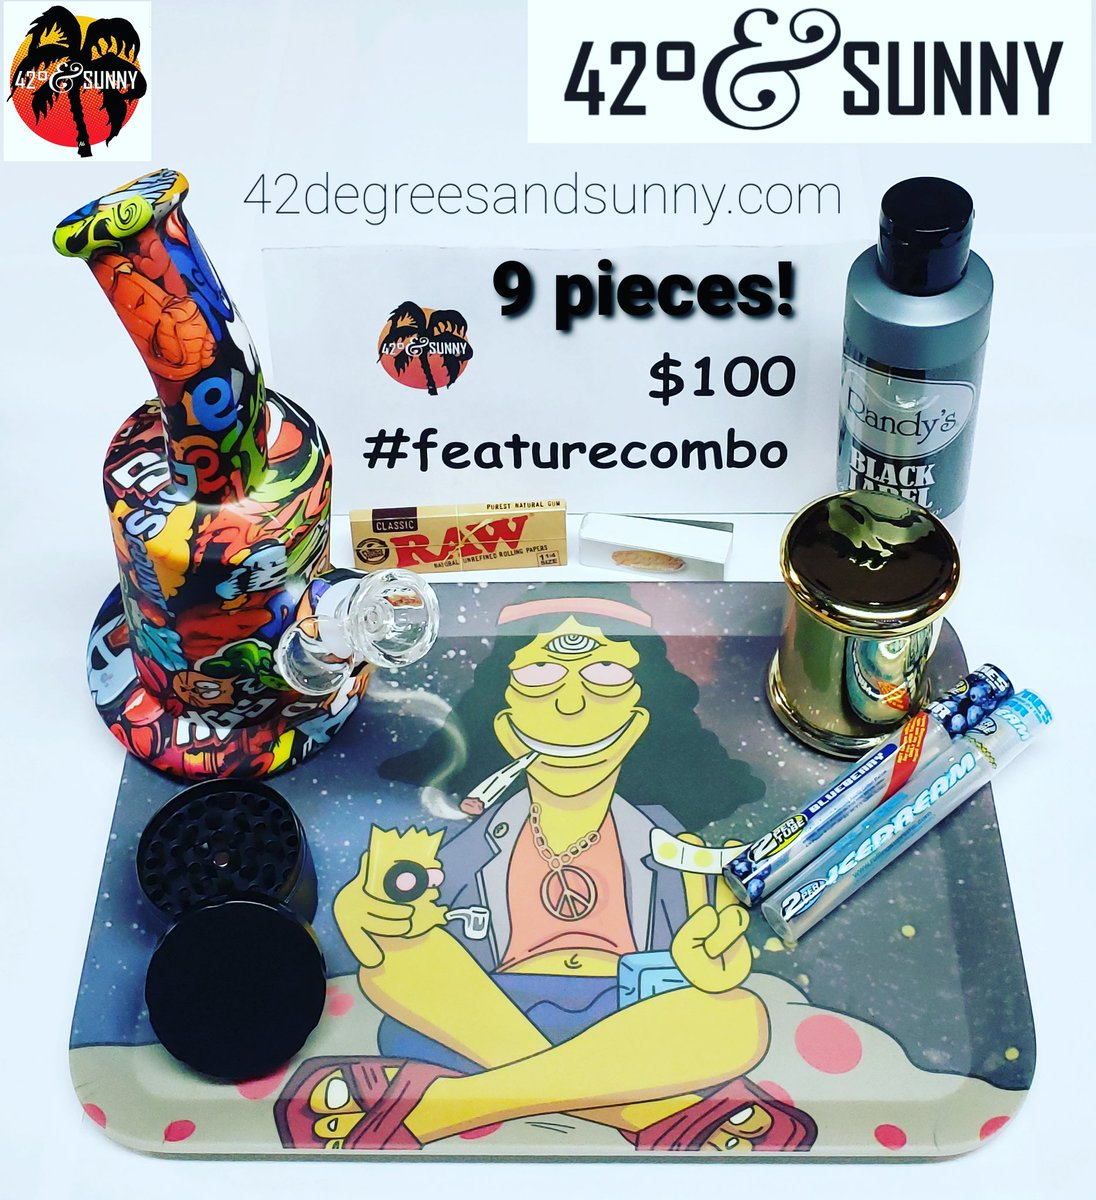 Check out the newest #featurecombo! 9 pieces for $100! #silicone #waterpipe #randysblacklabel #biodegradable #rollingtray #grinder #smellproofjar #rawrollingpapers #filtertips #clearcones #smokingdeals on #smokingaccessories #headshop #headshoplife #420andsunny #42degreesandsunny https://t.co/bFhBGCnLyg